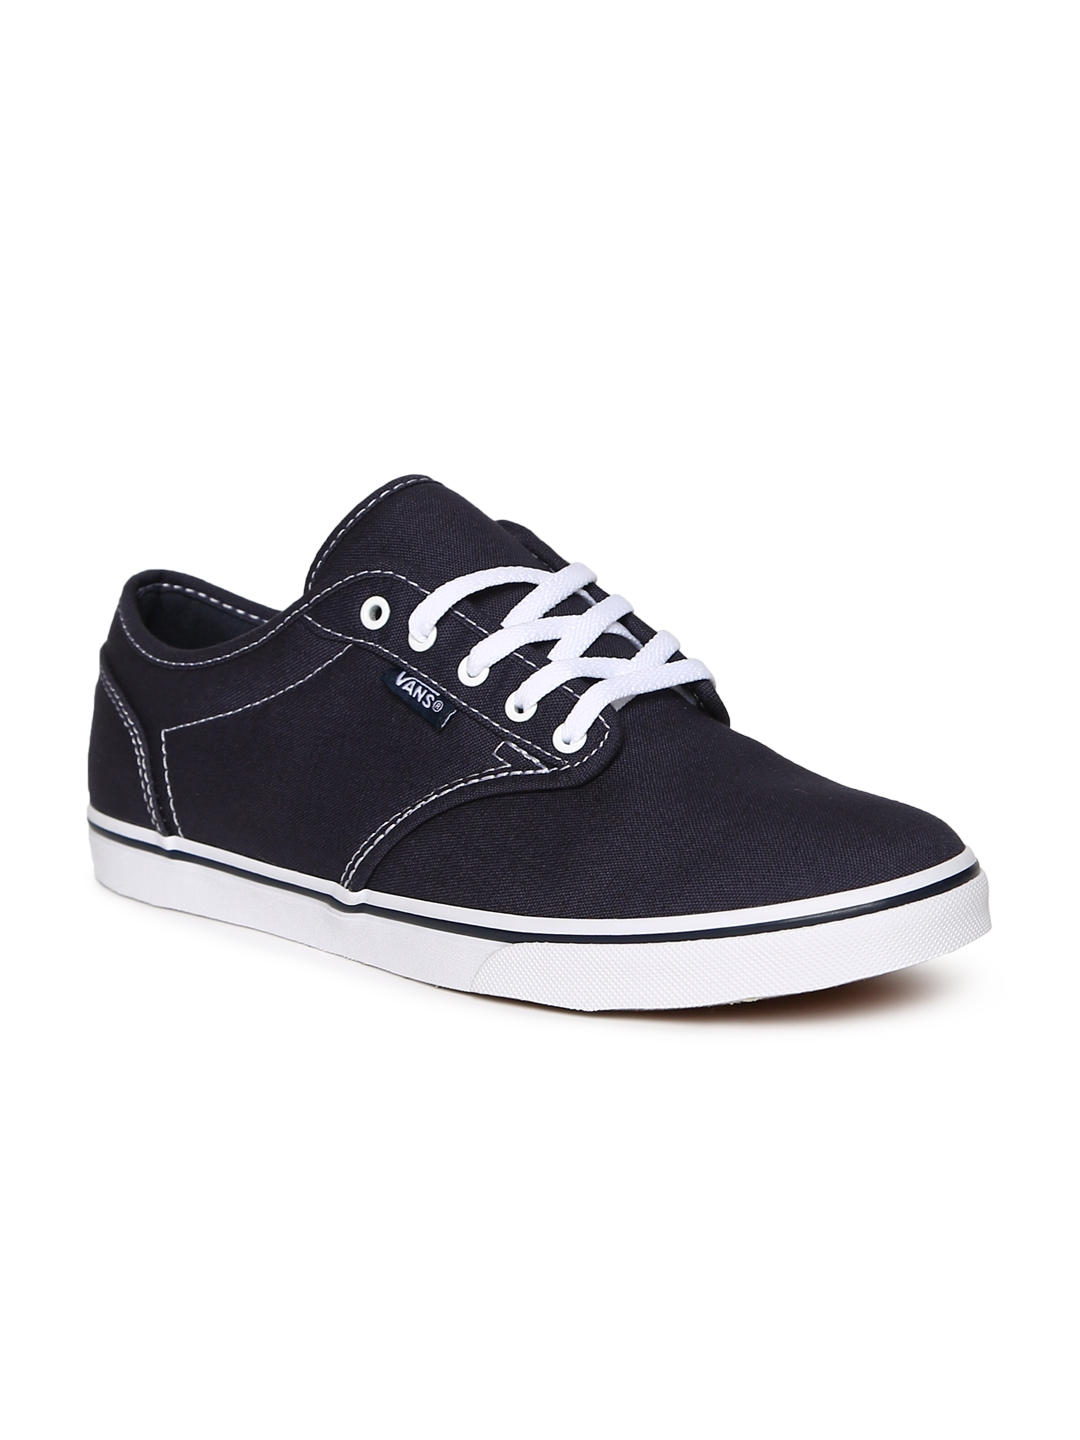 Buy Vans Women Navy Atwood Sneakers - Casual Shoes for Women 2505637 ... 2f219b28744f